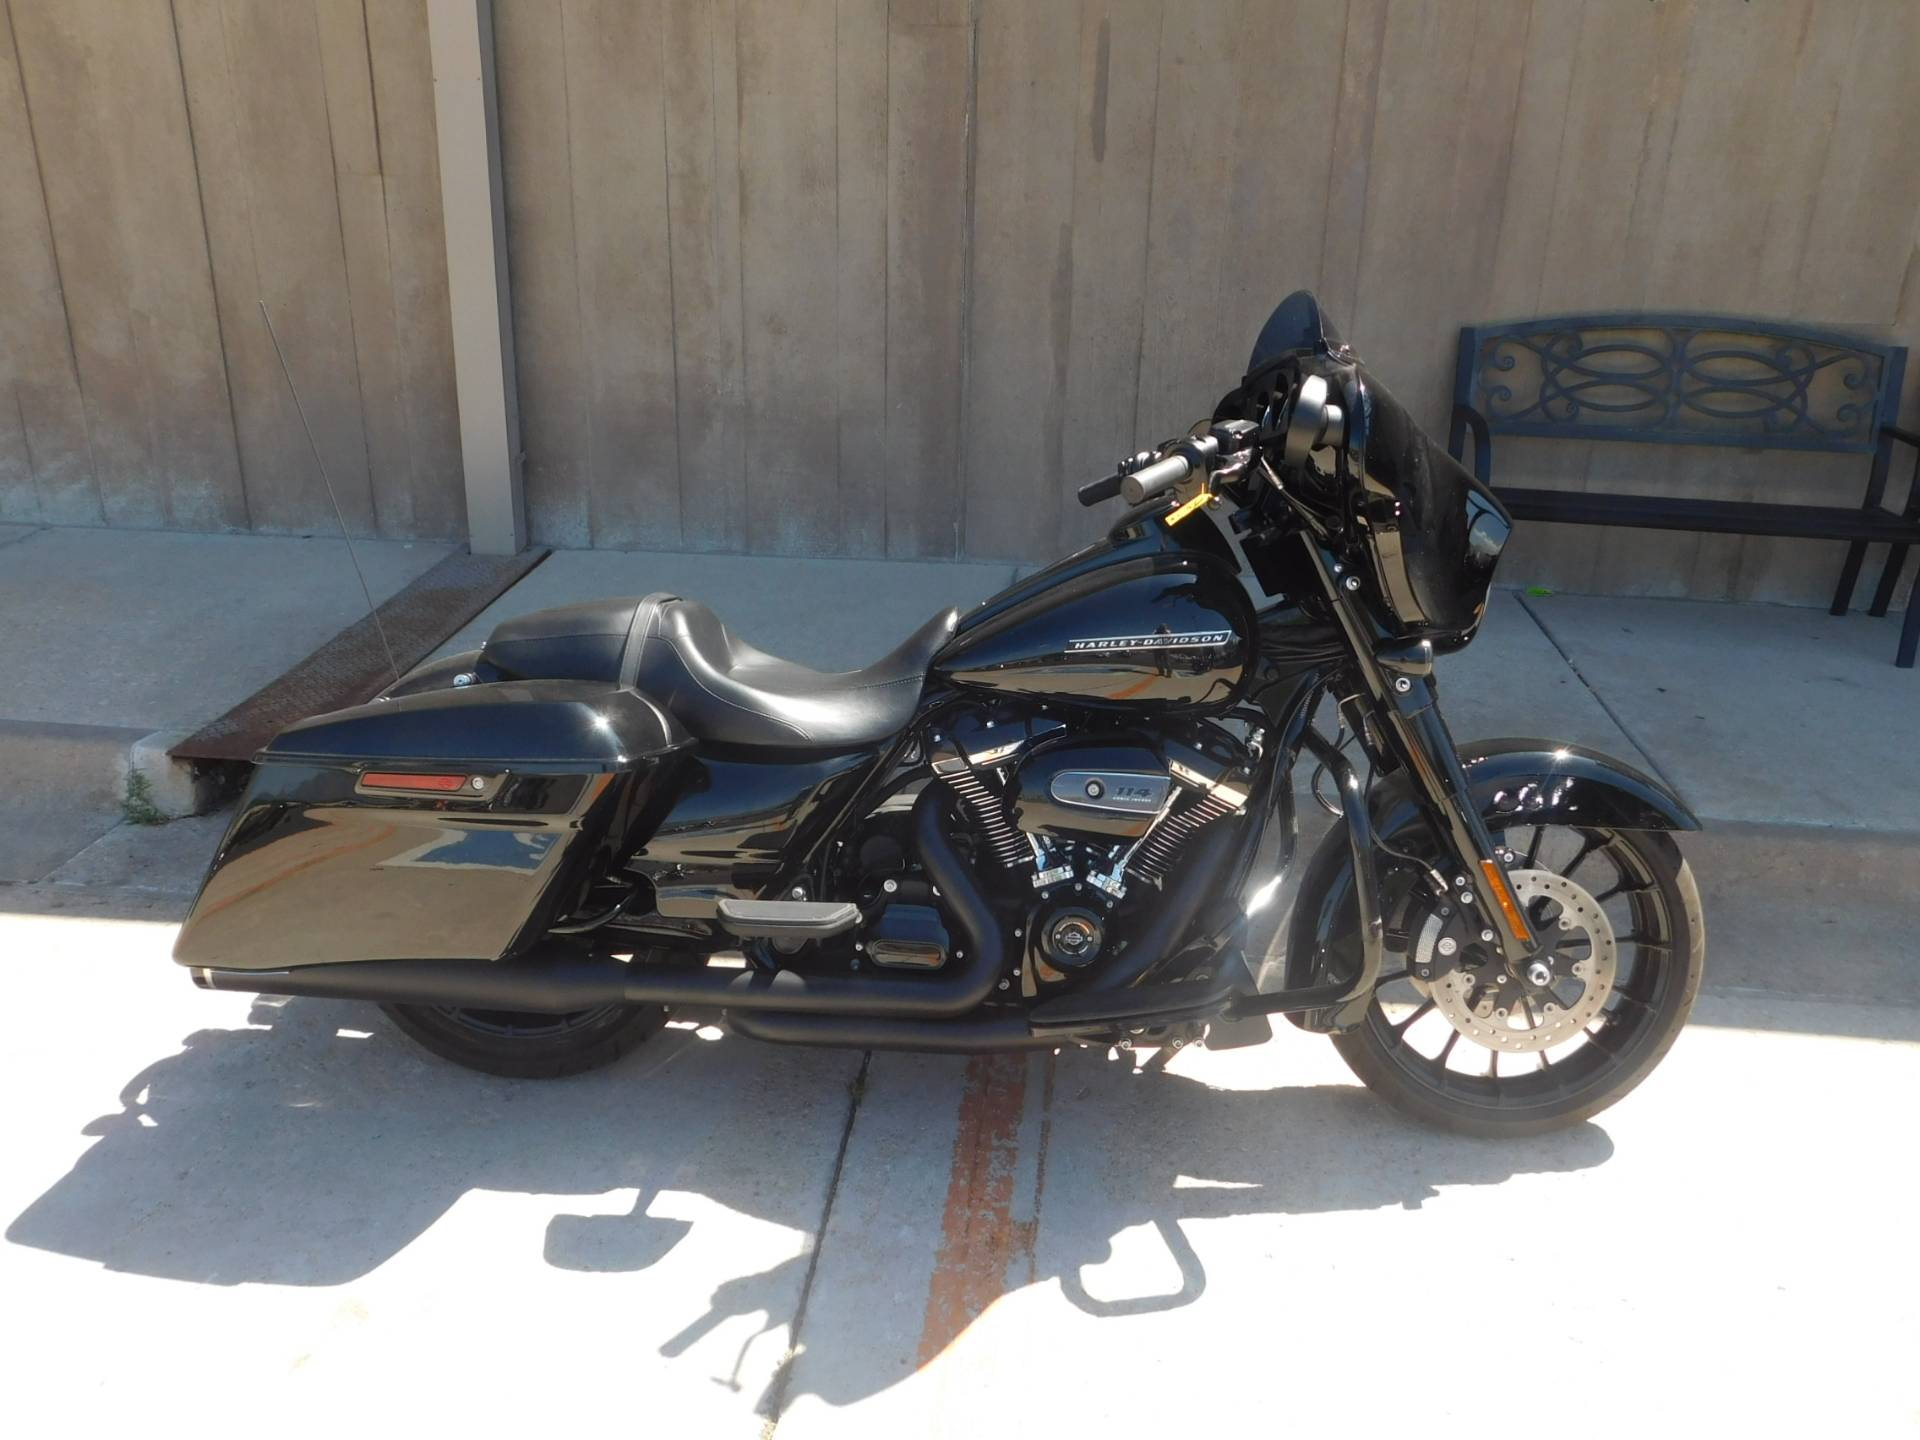 Used 2019 Harley Davidson Street Glide Special Motorcycles In